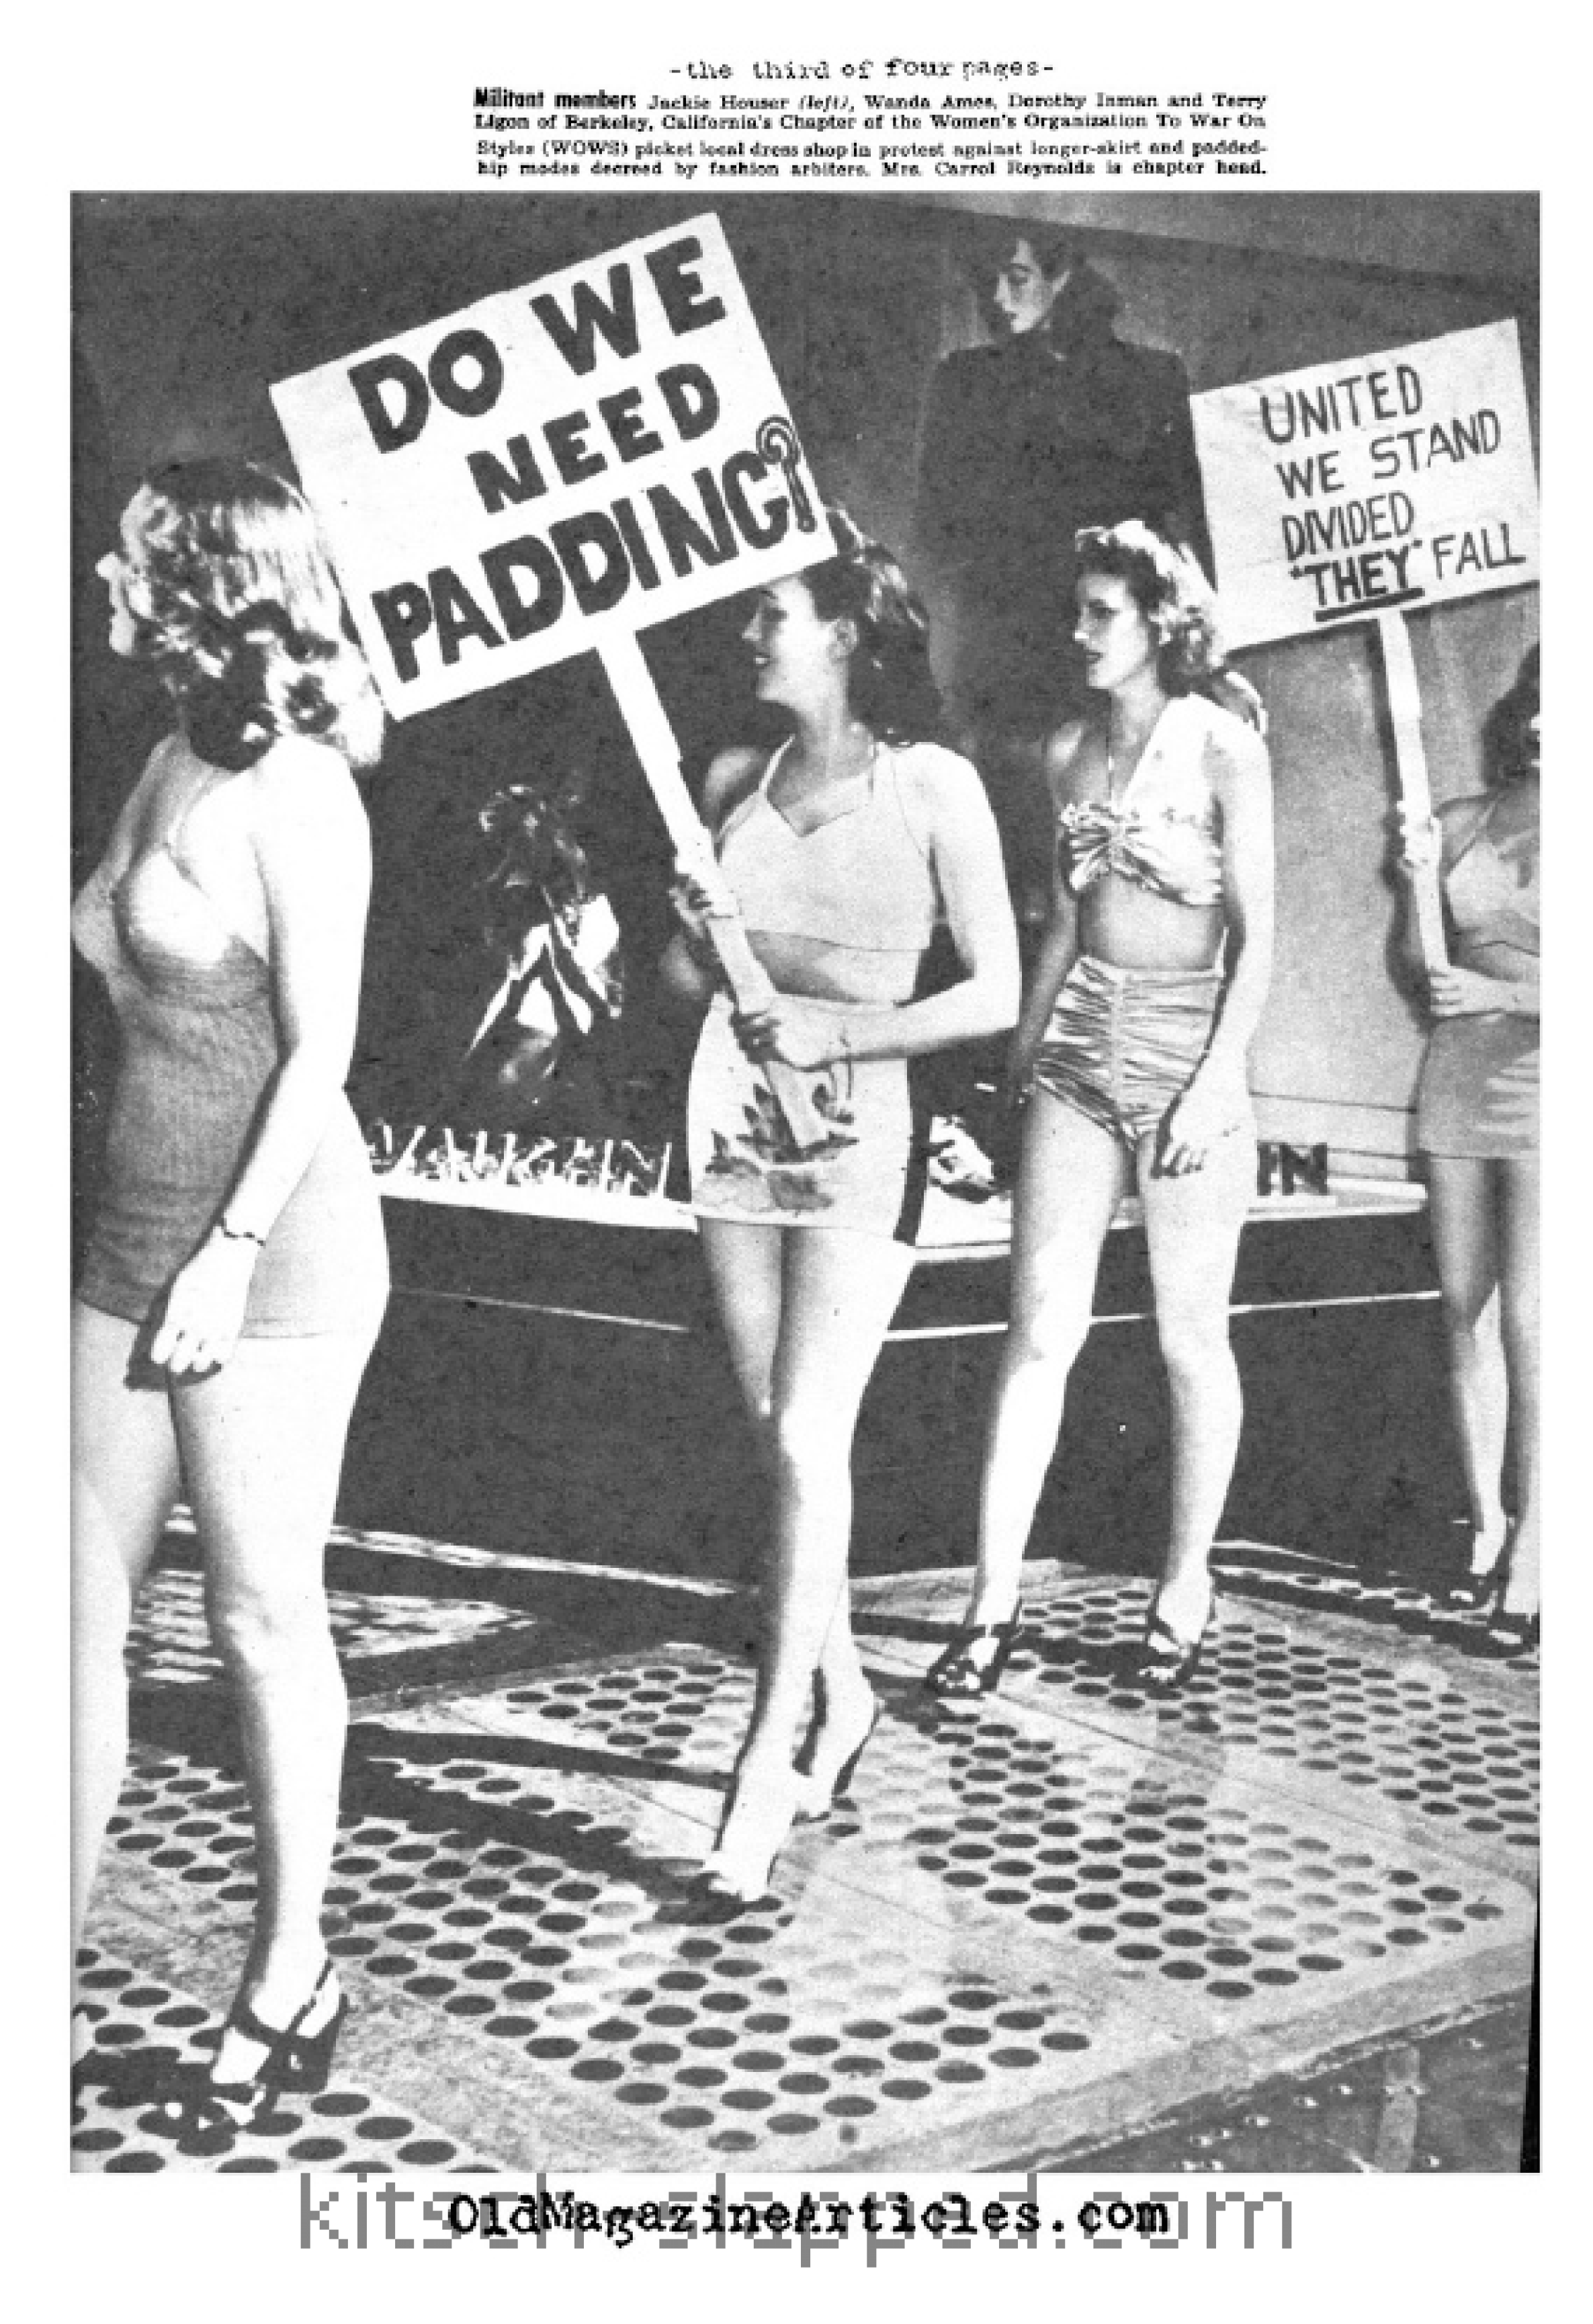 1948 new look fashion complaints